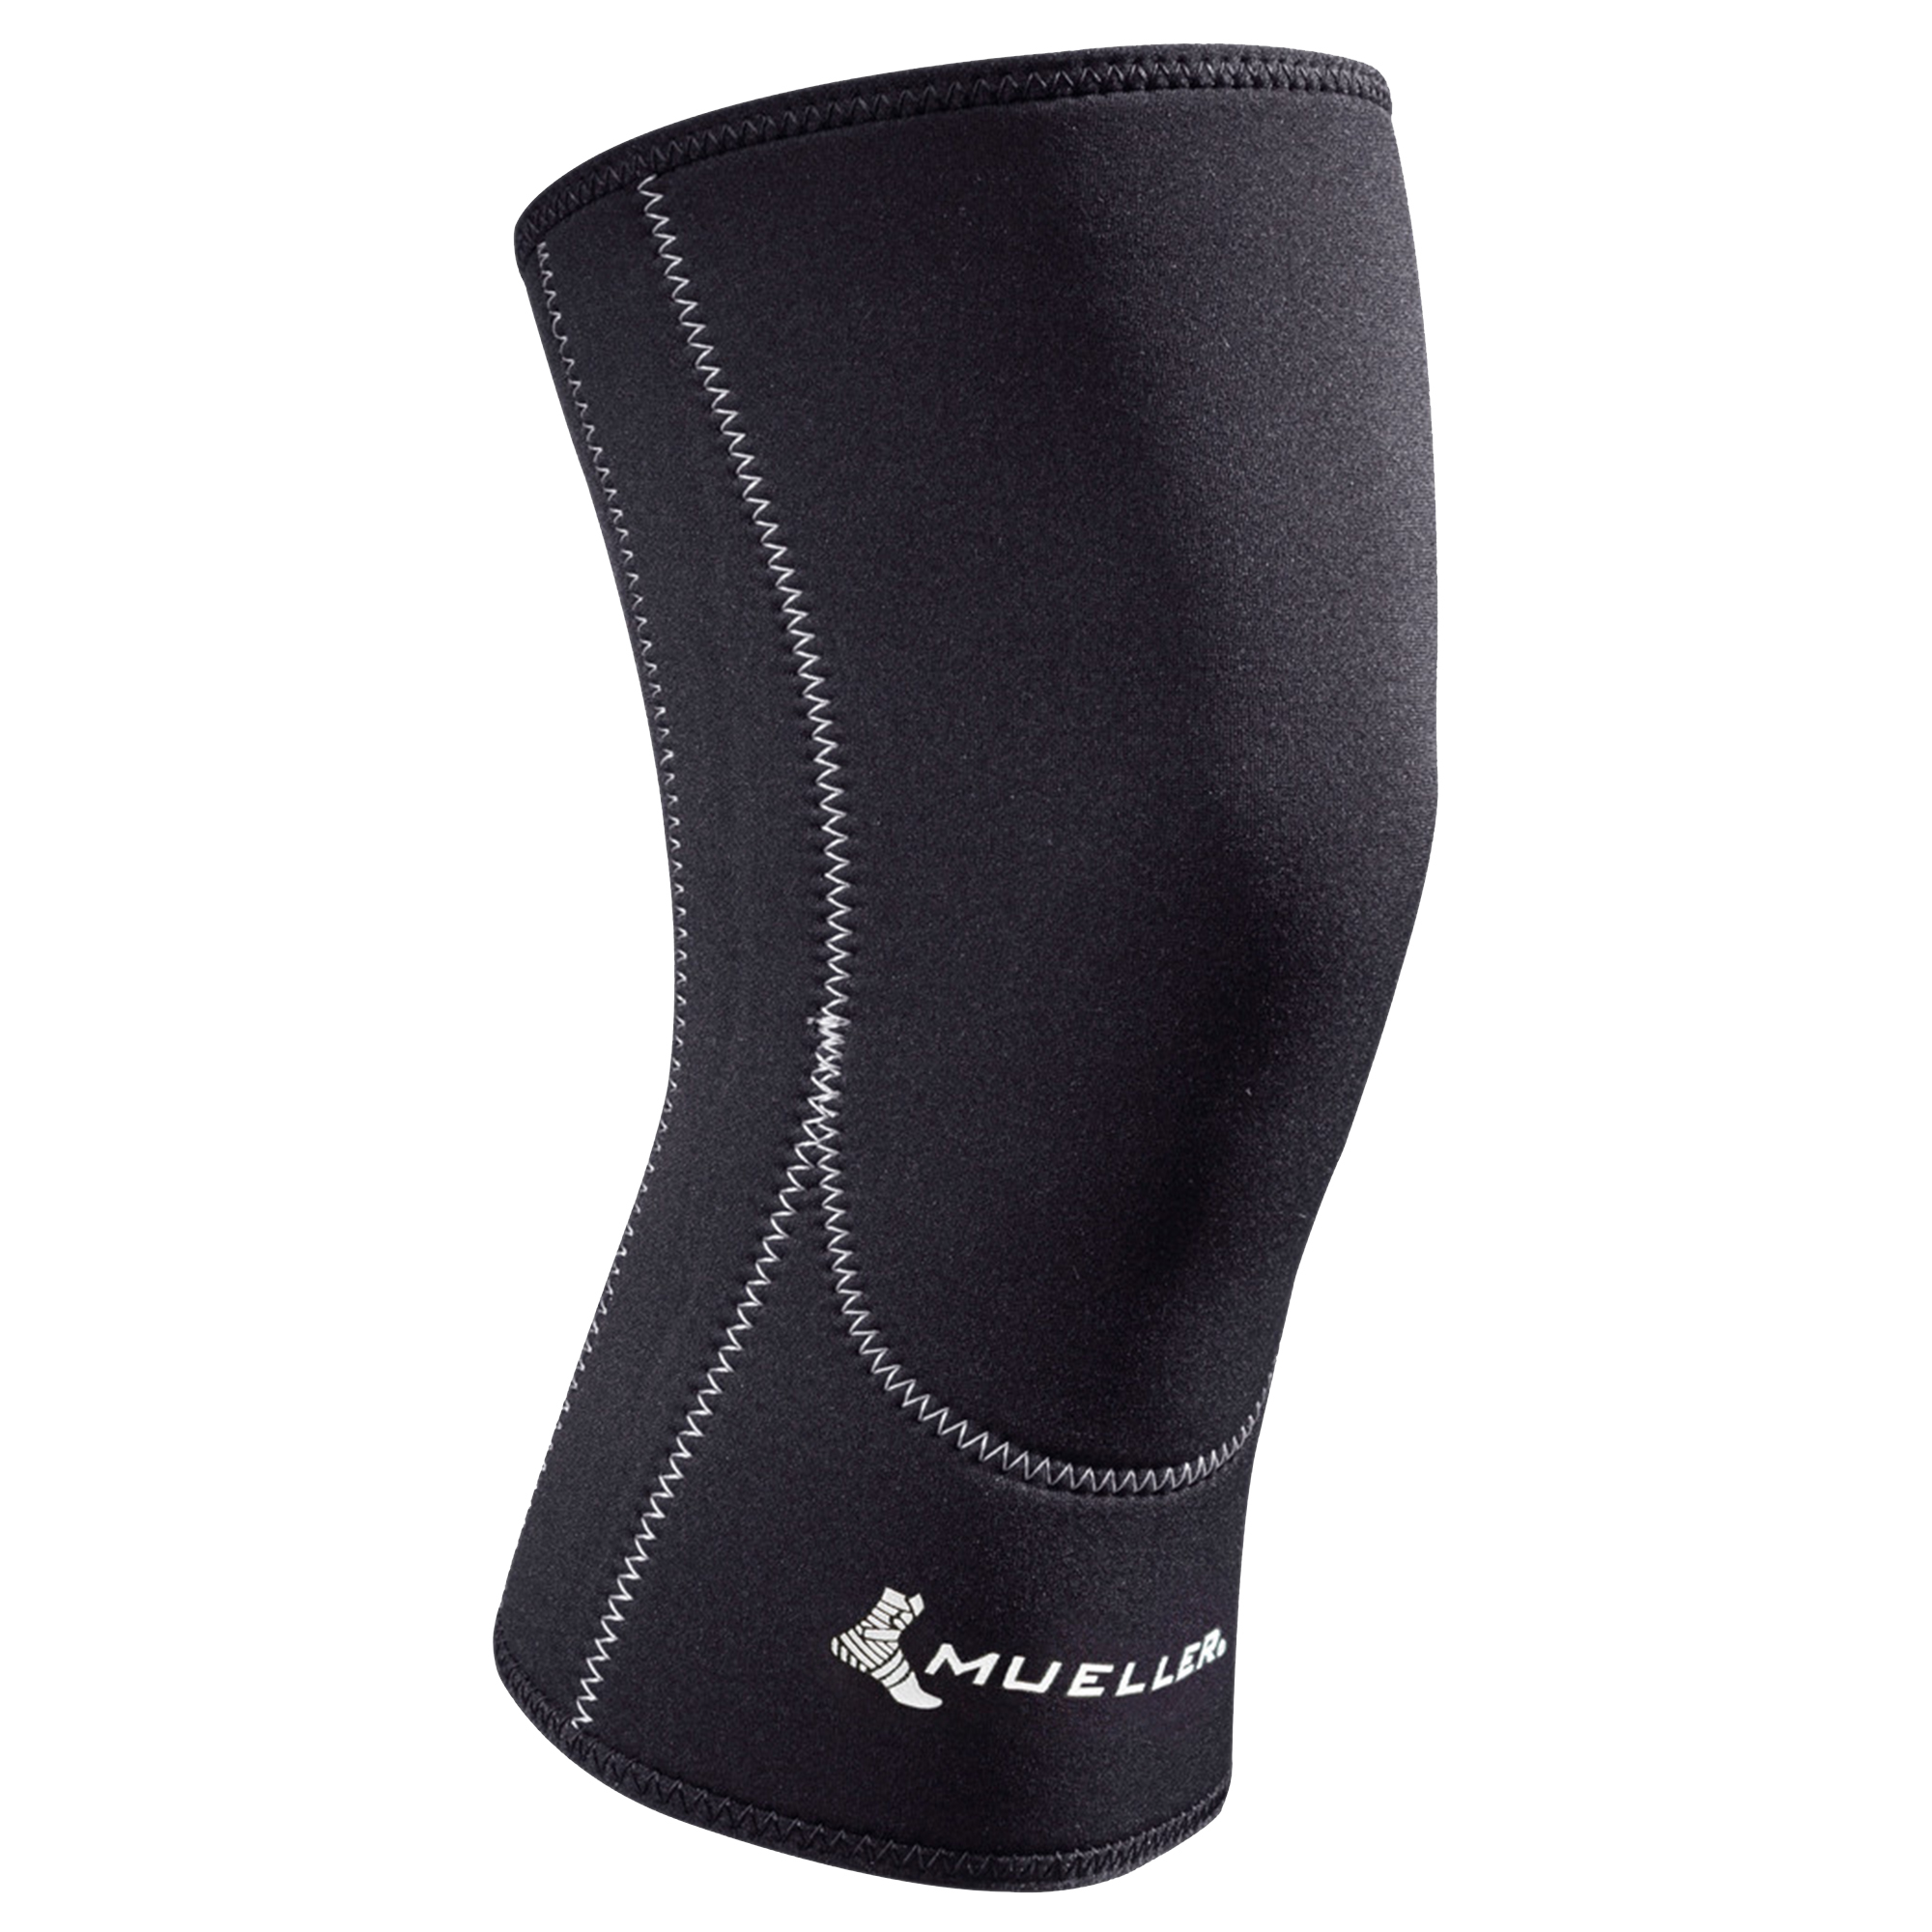 Closed Patella Knee Sleeve X-Large